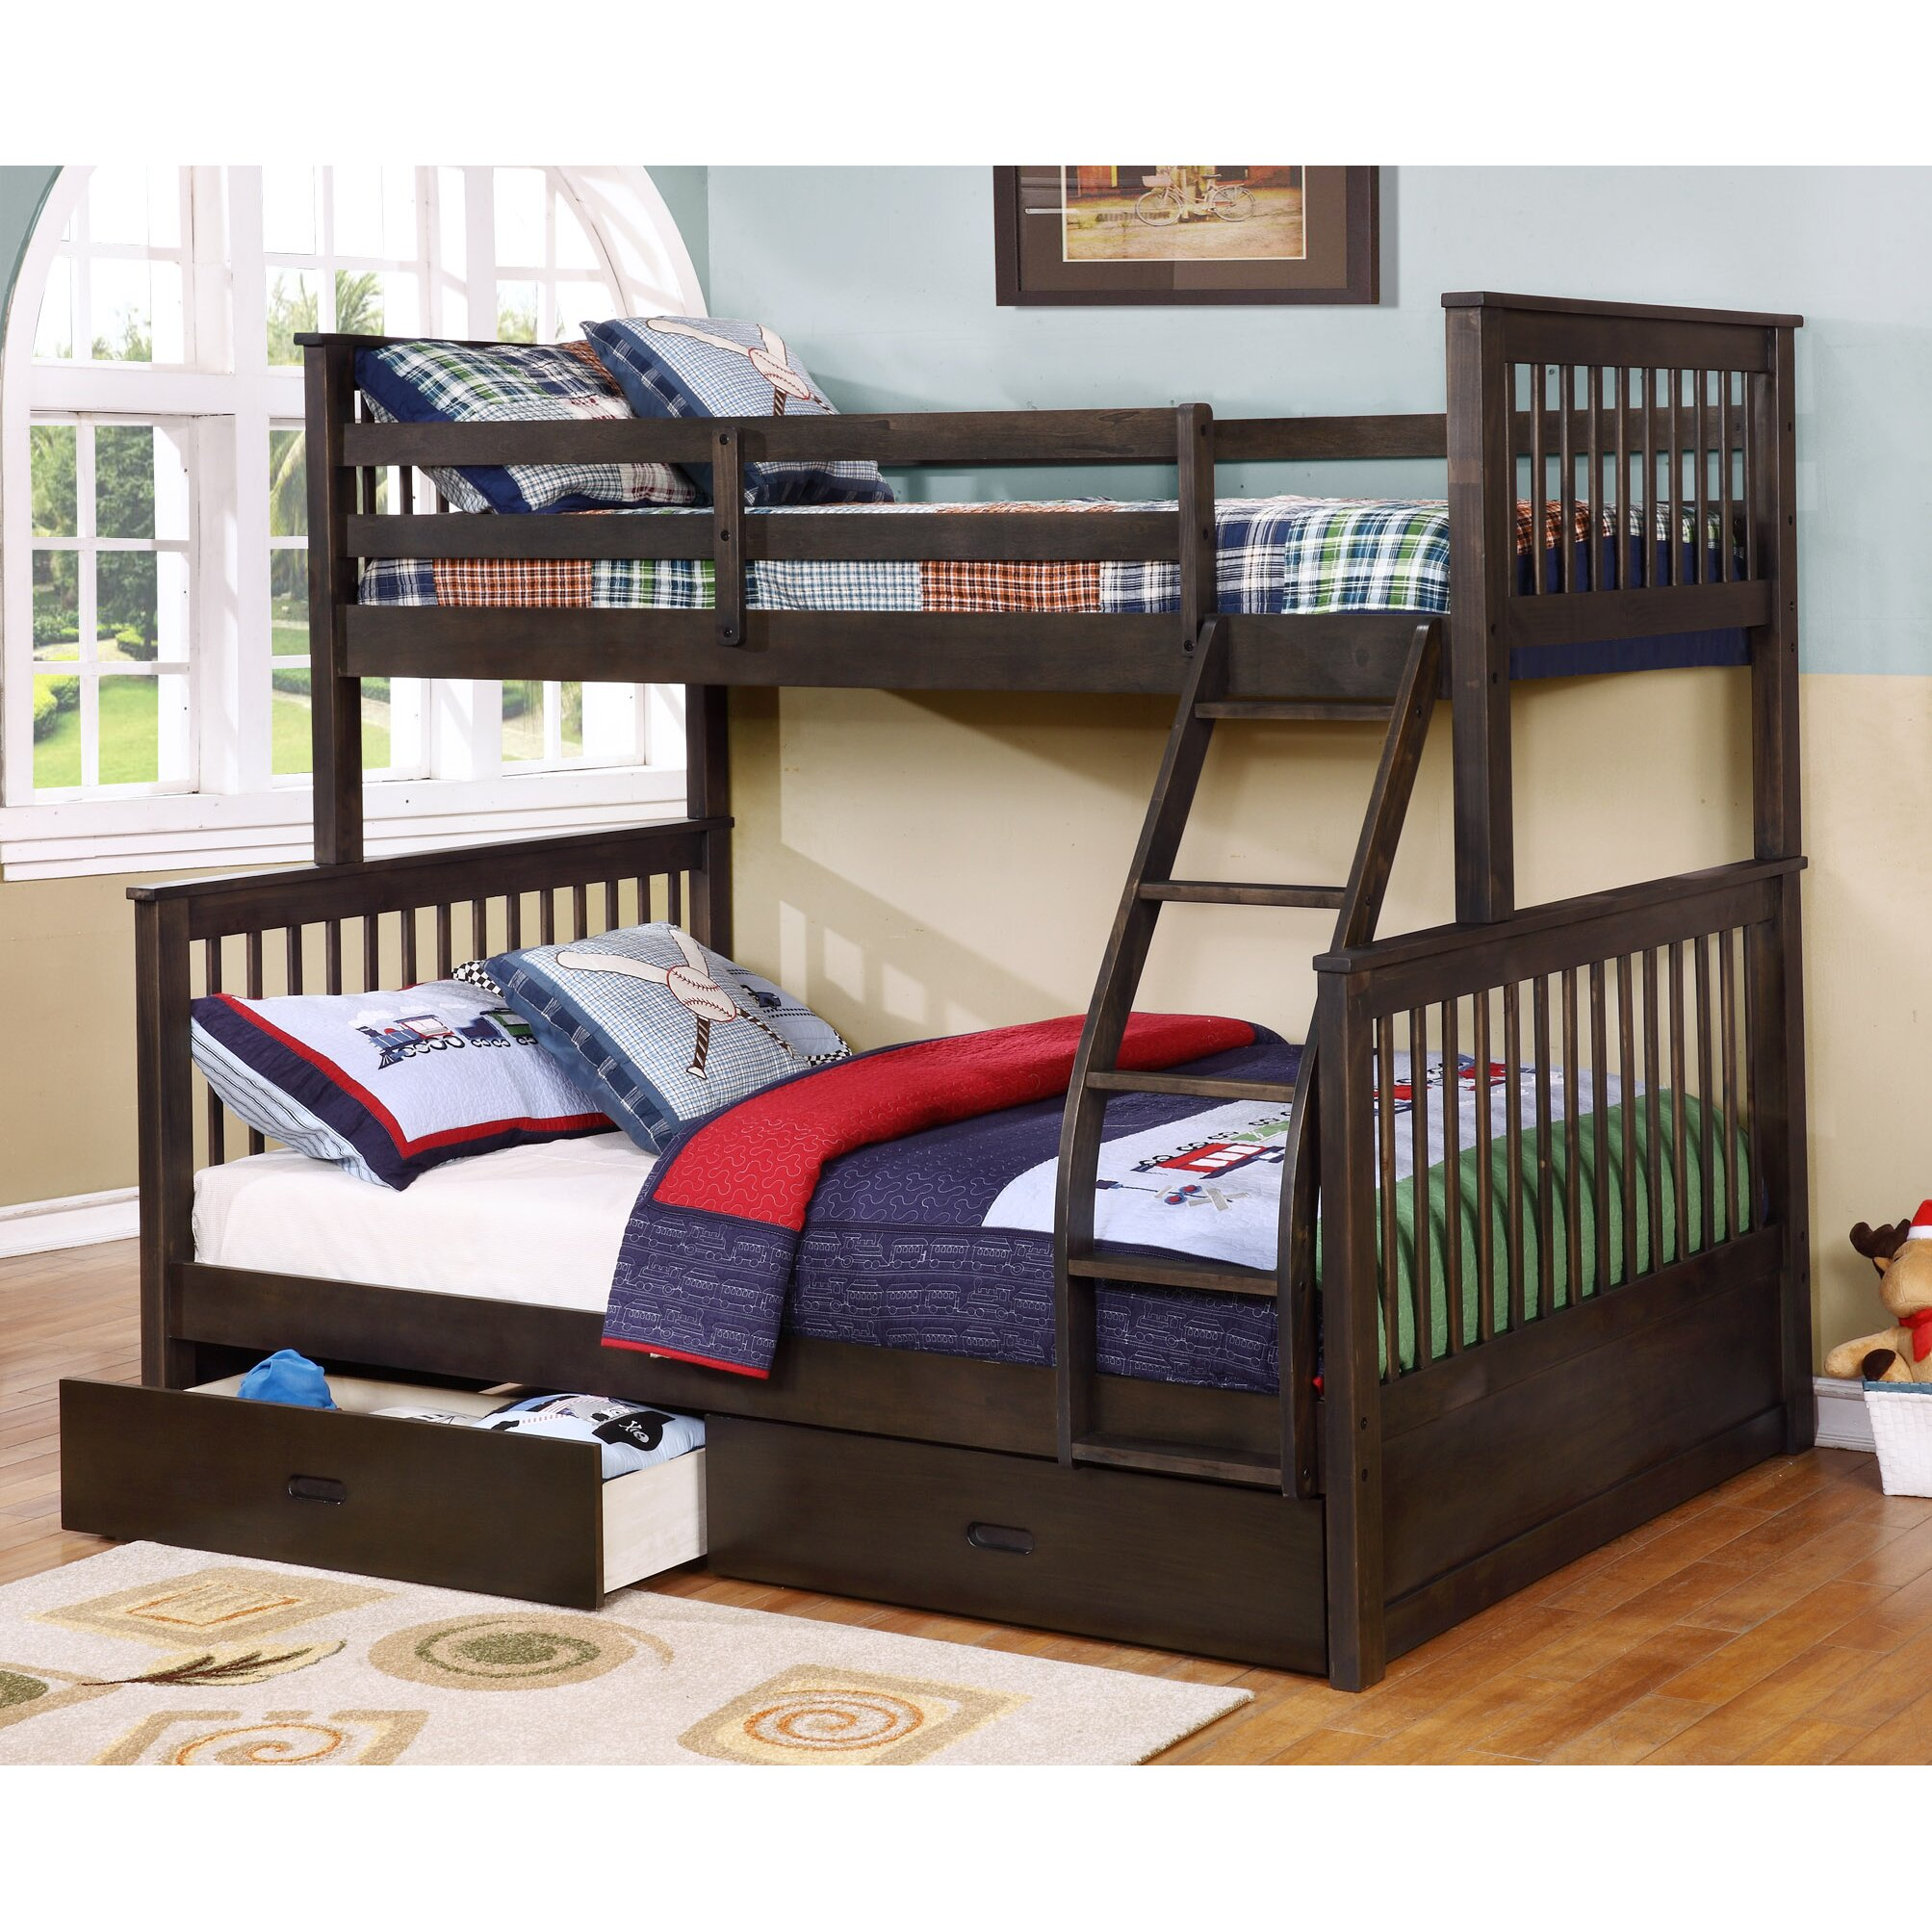 Wildon Home Paloma Mission Twin over Full Bunk Bed with